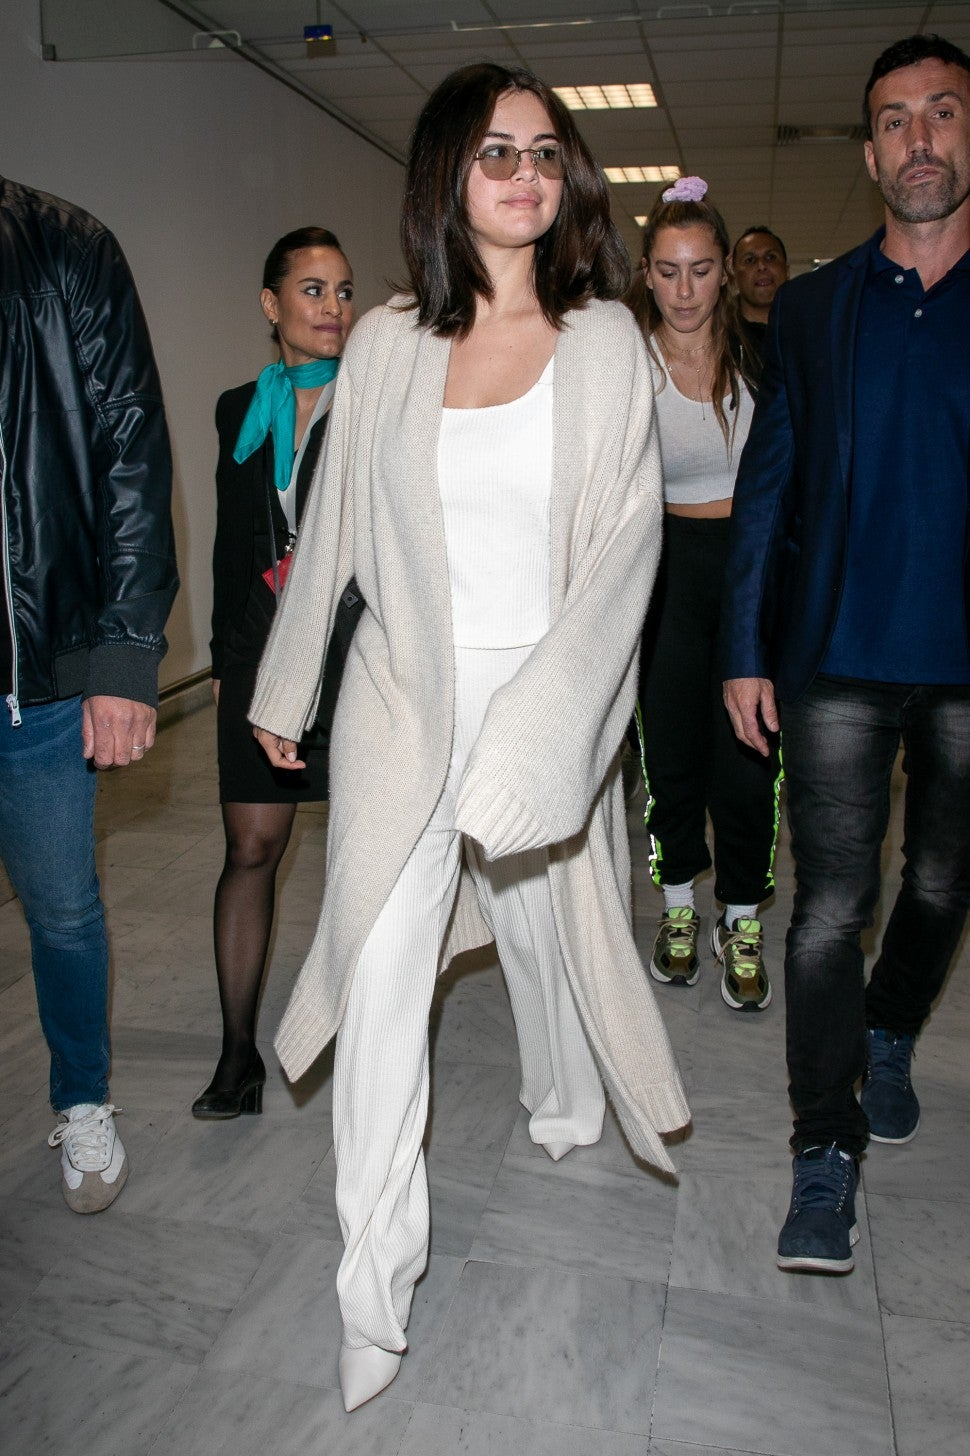 Selena Gomez at Nice airport ahead of Cannes